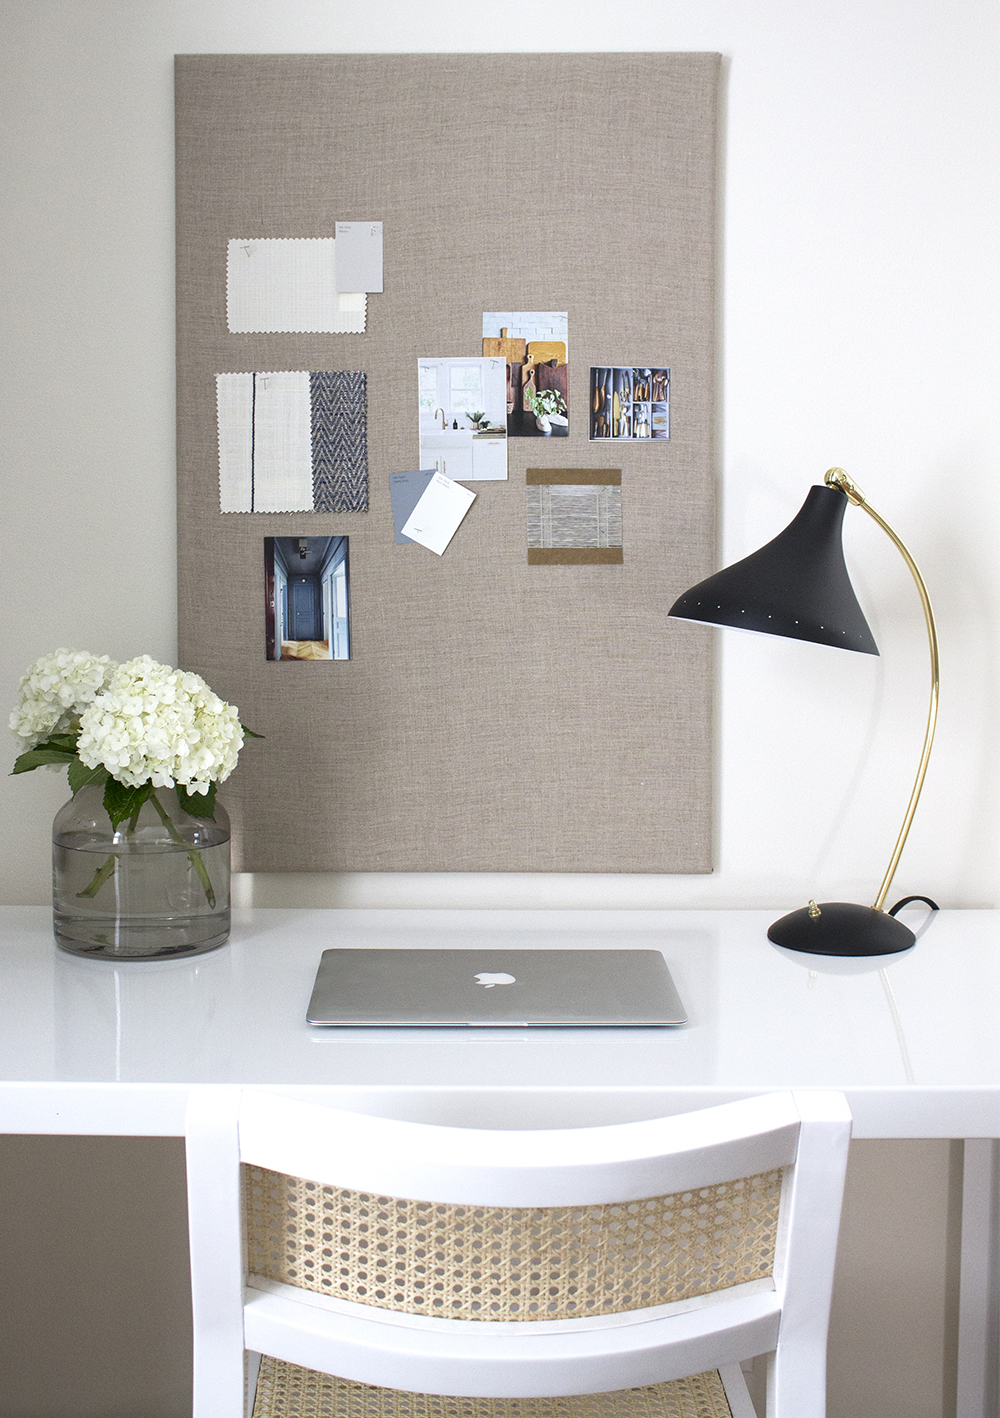 5 Tips for Working From Home + Home Office Furniture Roundup - roomfortuesday.com